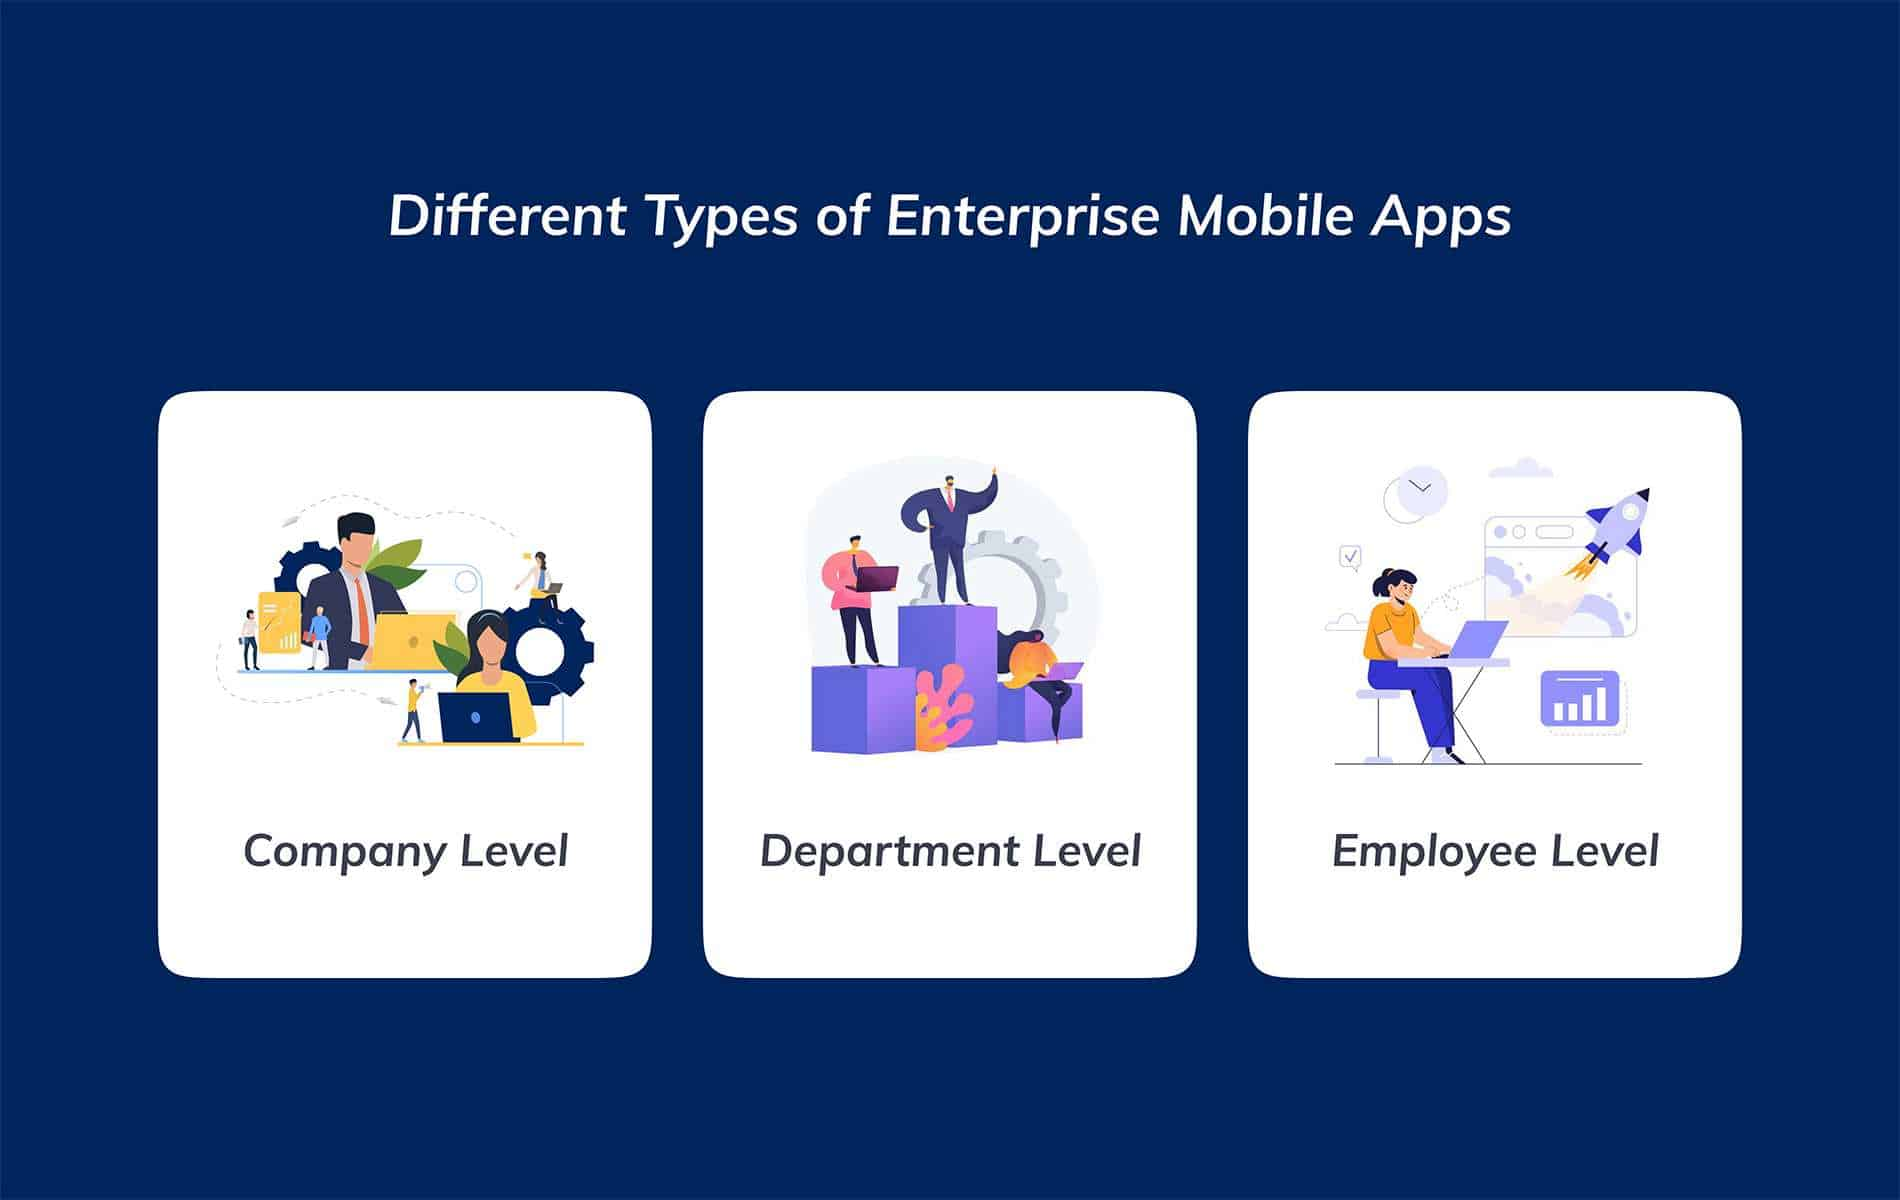 an image which describes different types of enterprise mobile apps